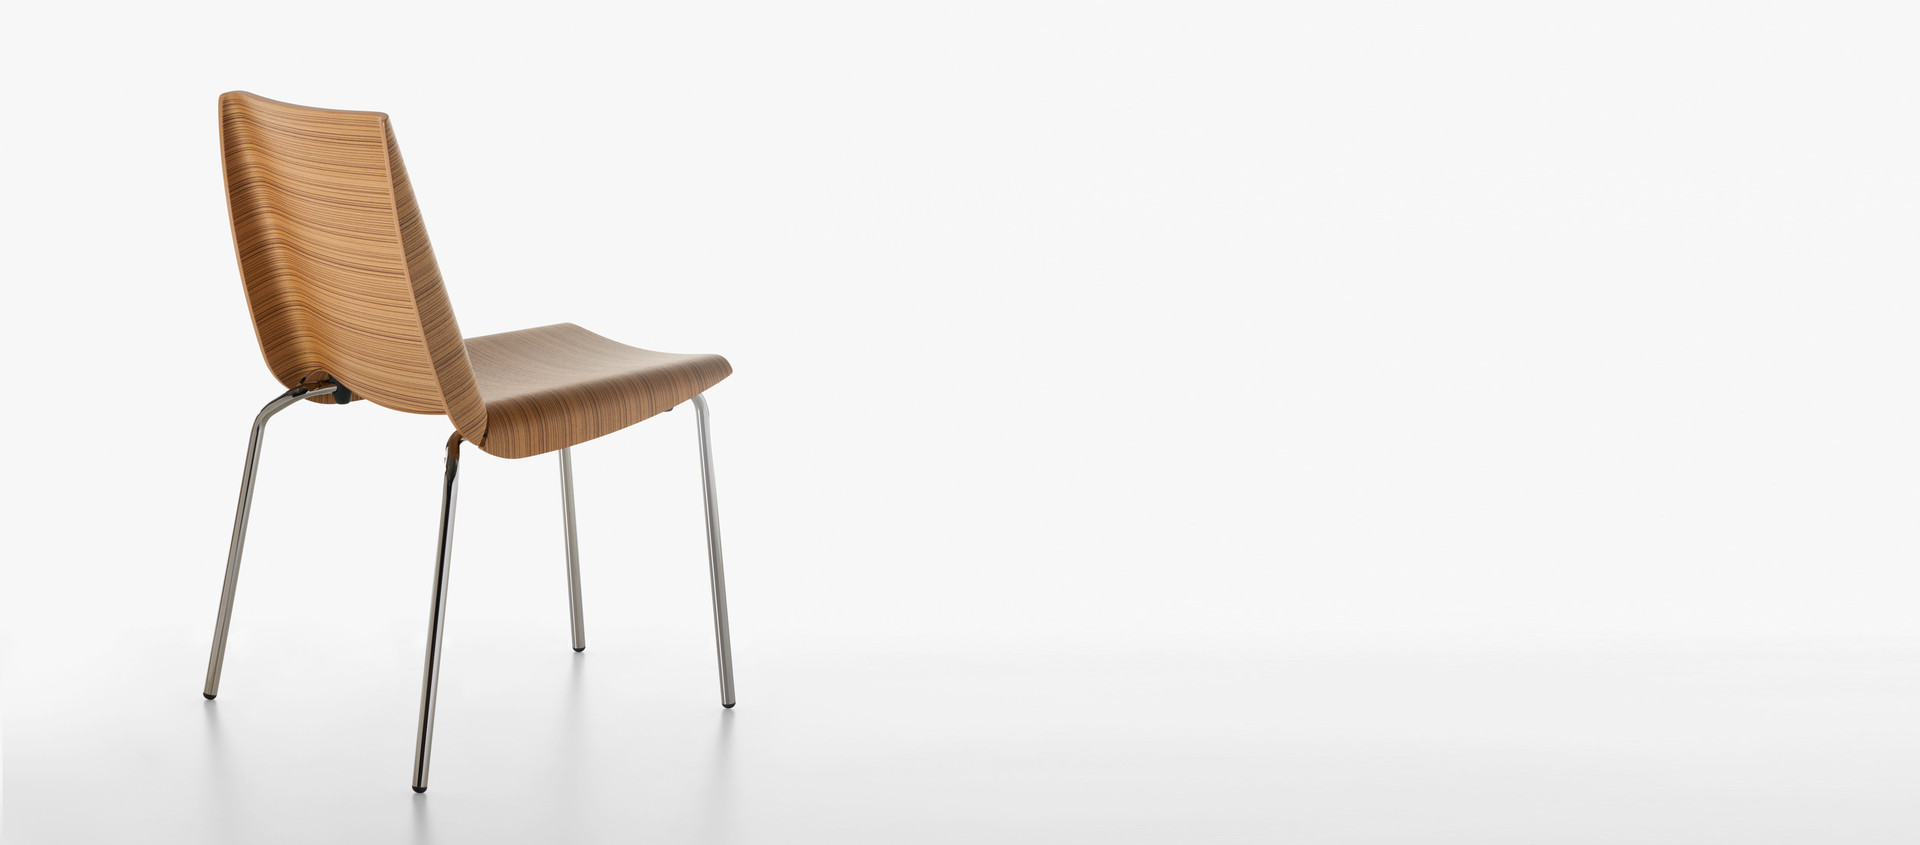 HERO - PLANK MILLEFOGLIE chair